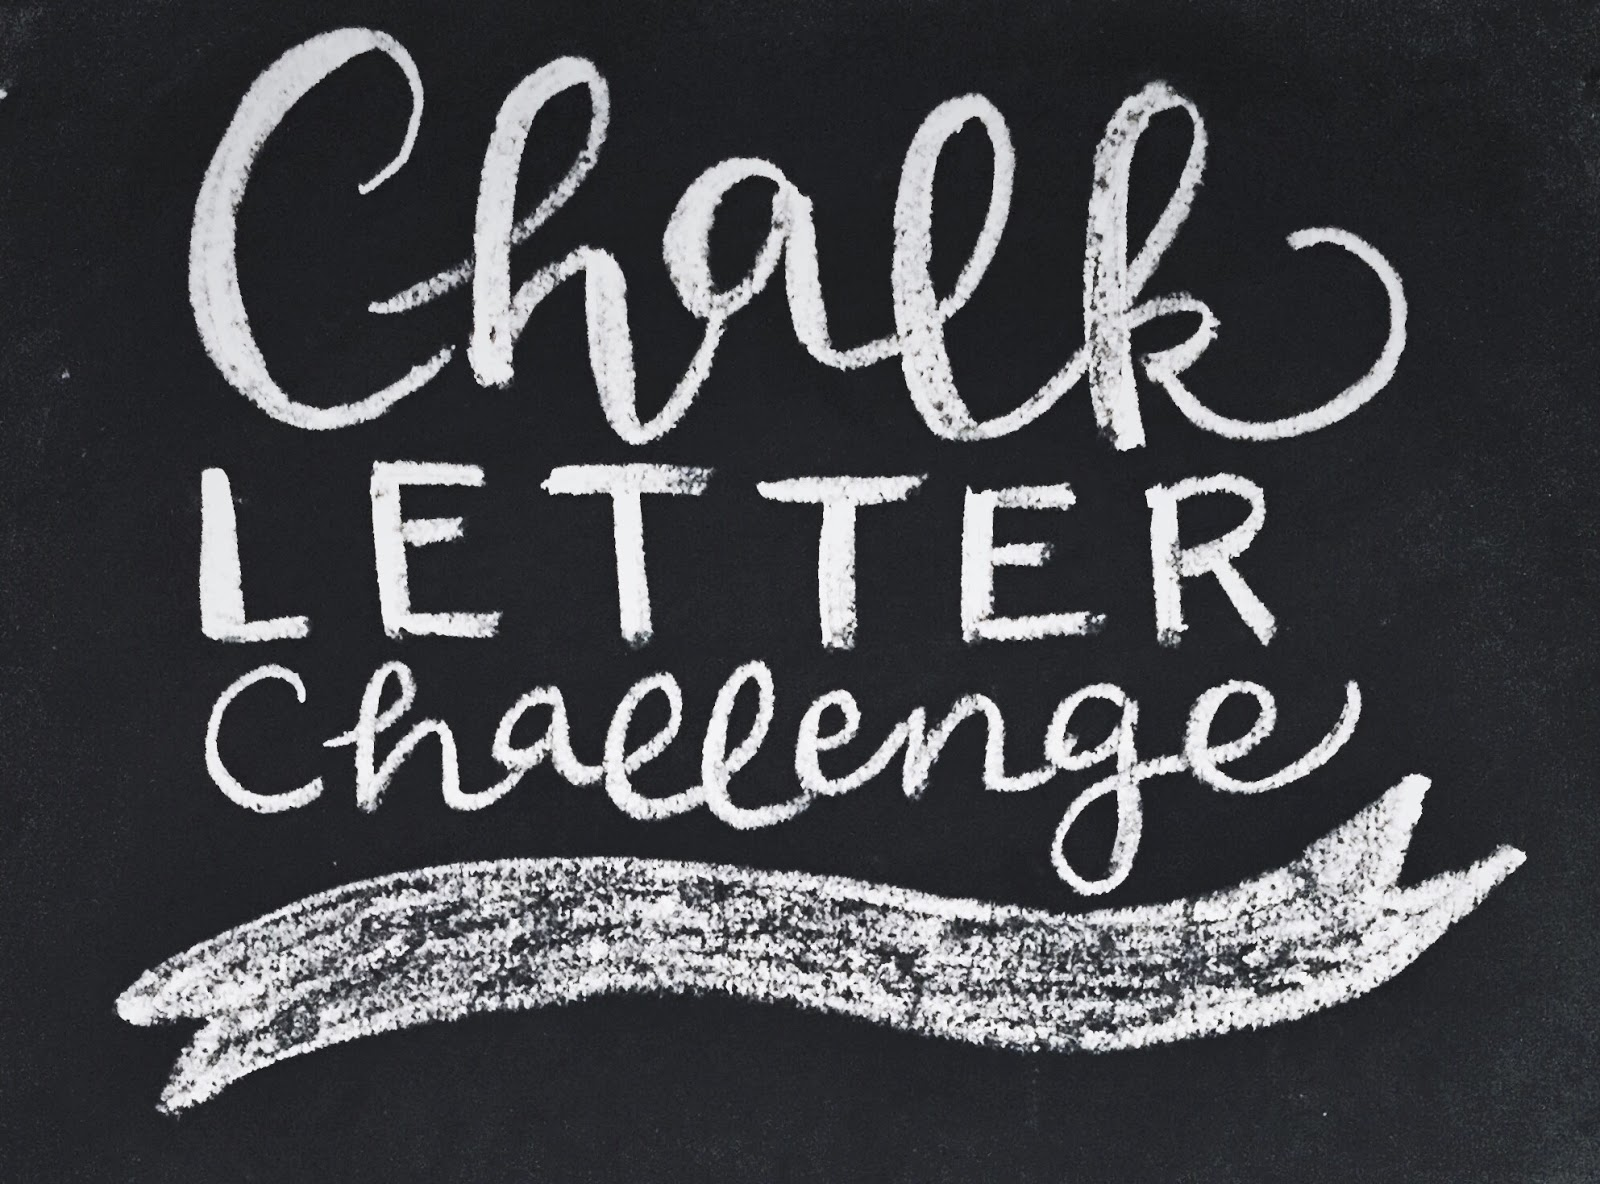 Life Unscripted: Join the Chalk Letter Challenge!